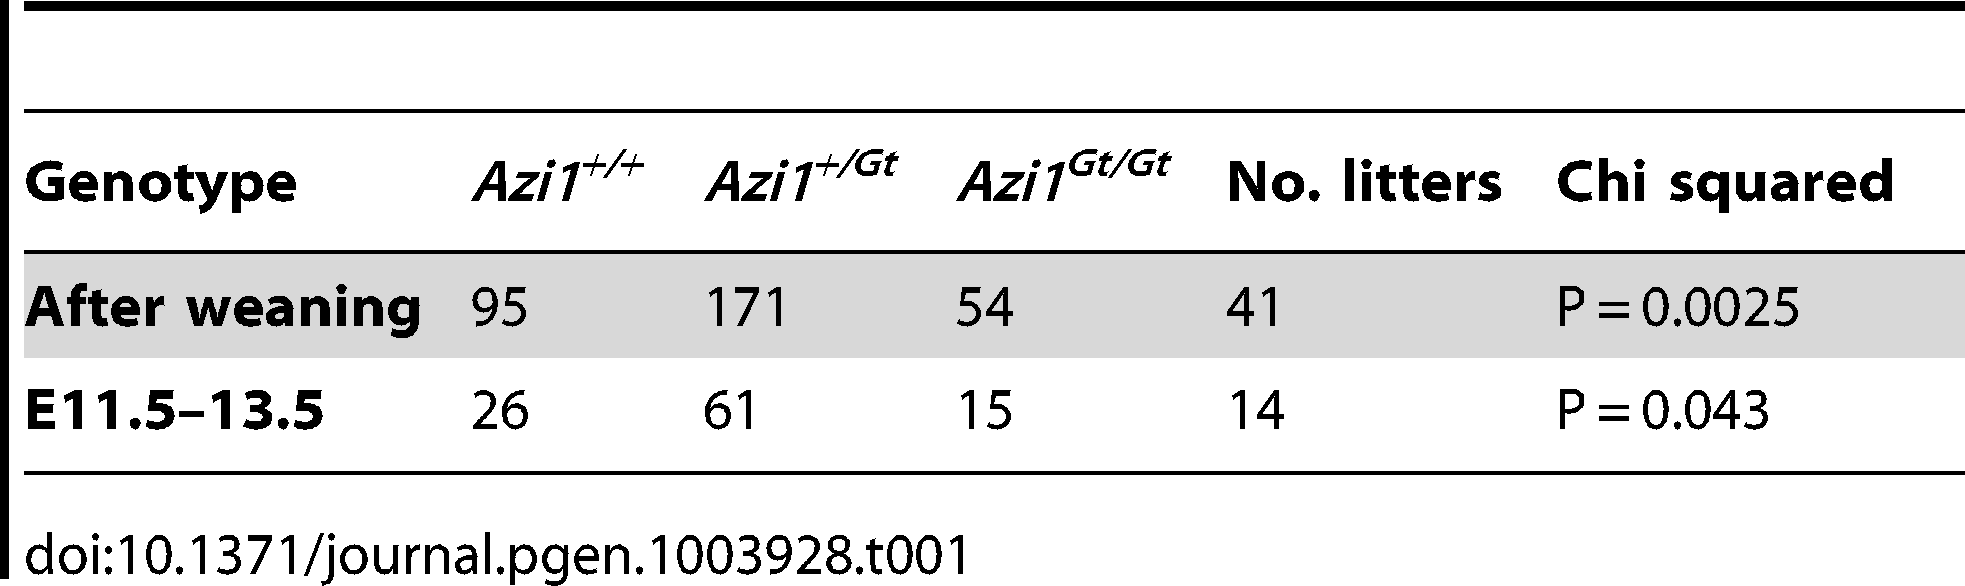 Genotypes of animals born from <i>Azi1<sup>+/Gt</sup></i> x <i>Azi1<sup>+/Gt</sup></i> matings.